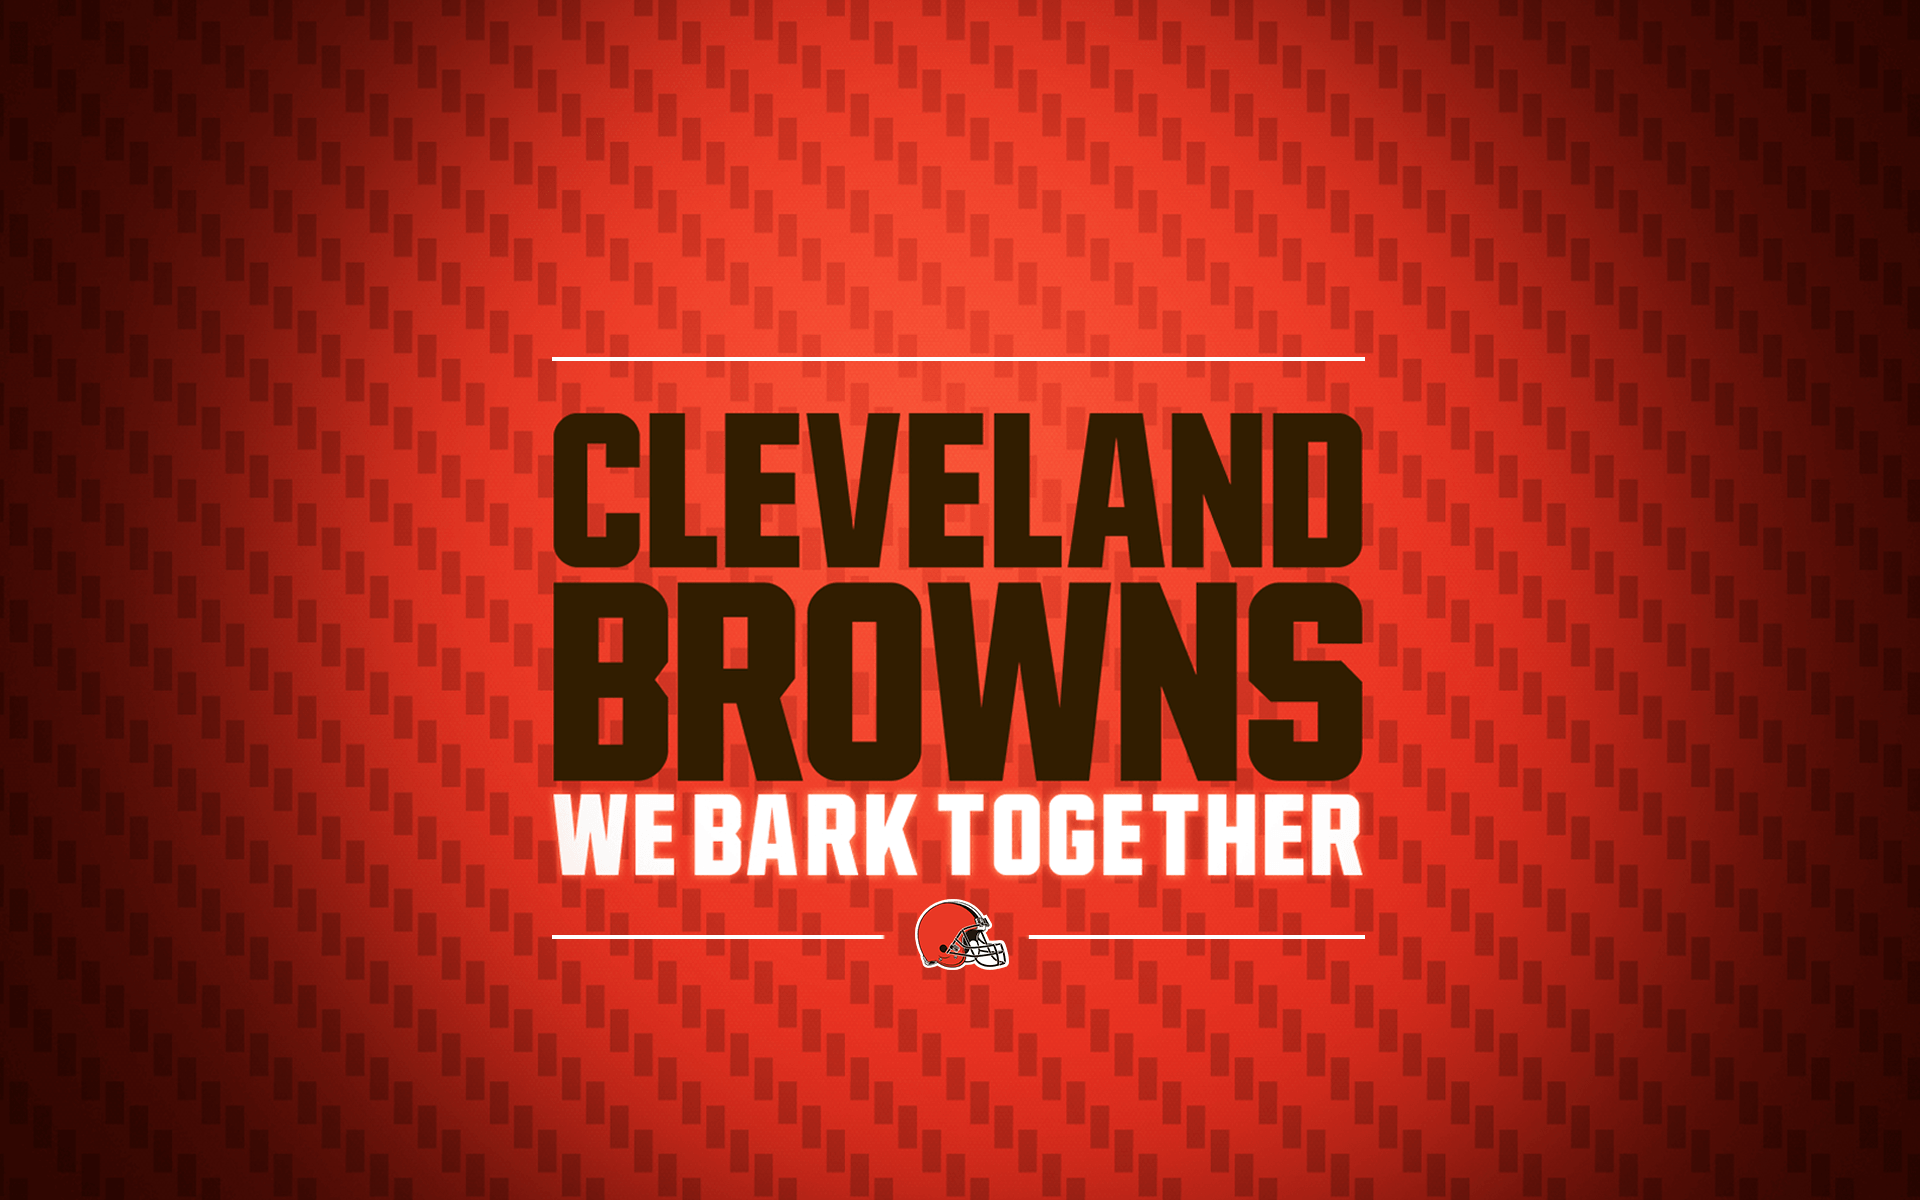 Cleveland Browns 2016 Wallpapers - Wallpaper Cave